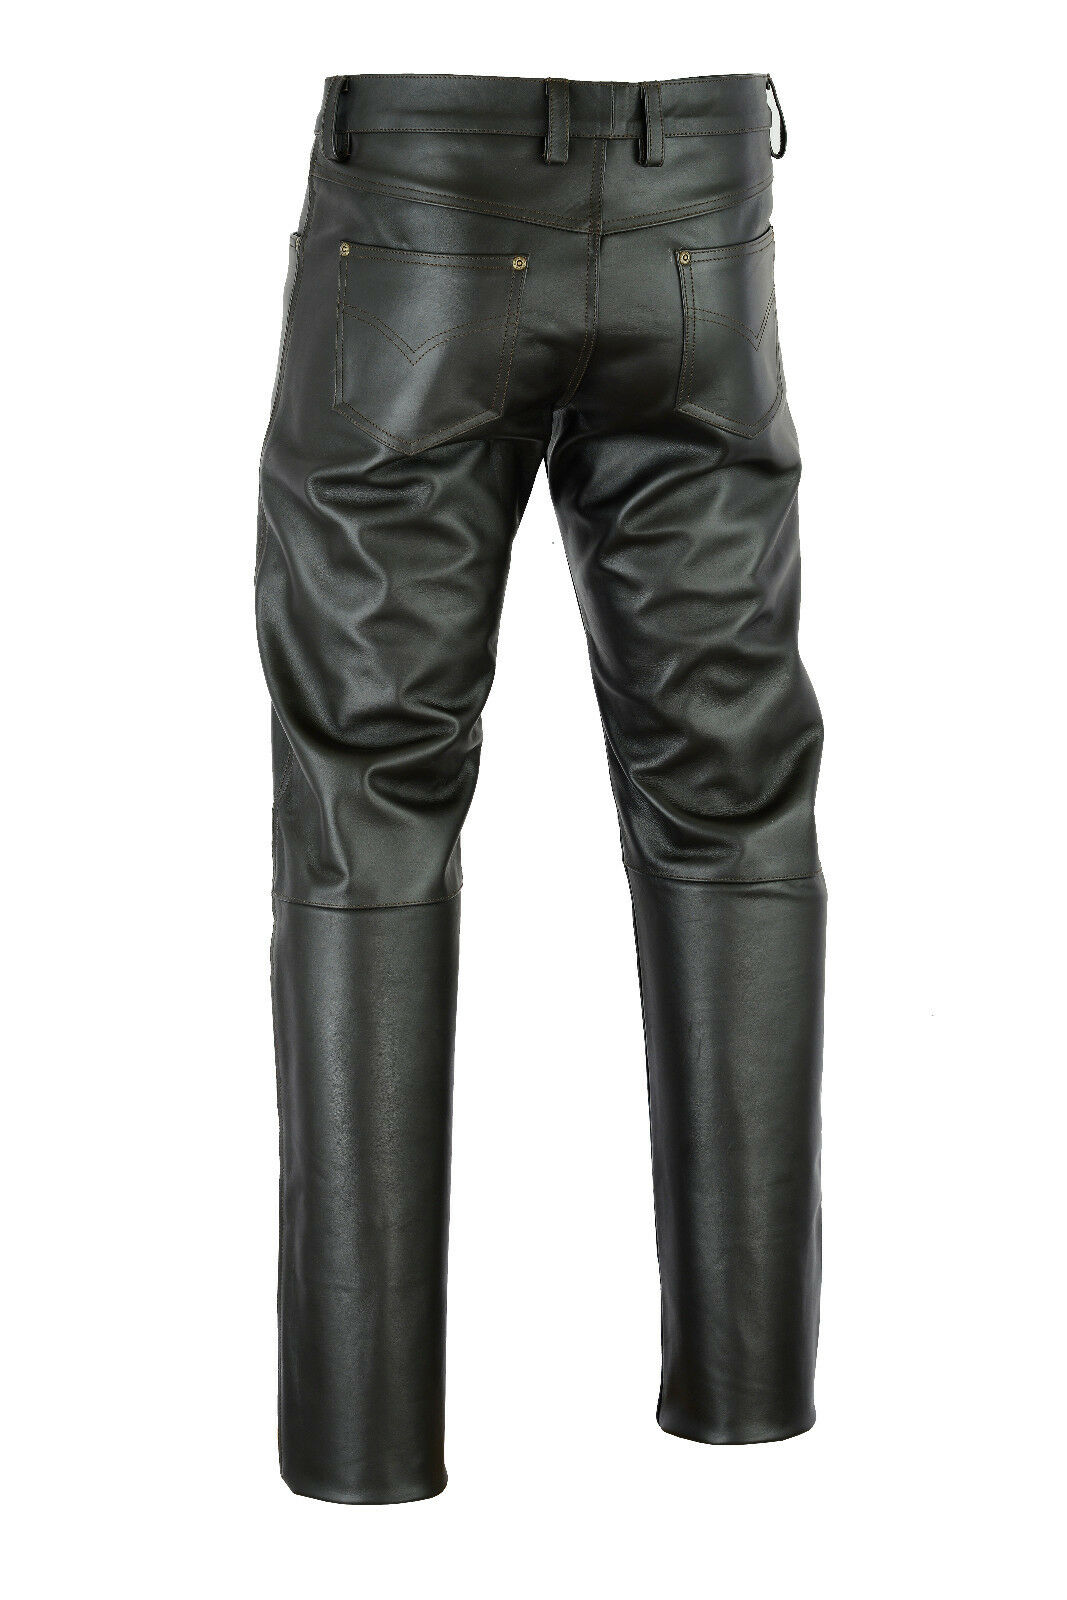 Aw-701 Aw-701 Aw-701 Old Look Antico Lederhose, Pelle Jeans Pantaloni, Napa pelle pantaloni PANTALON en cuir 3a27c9